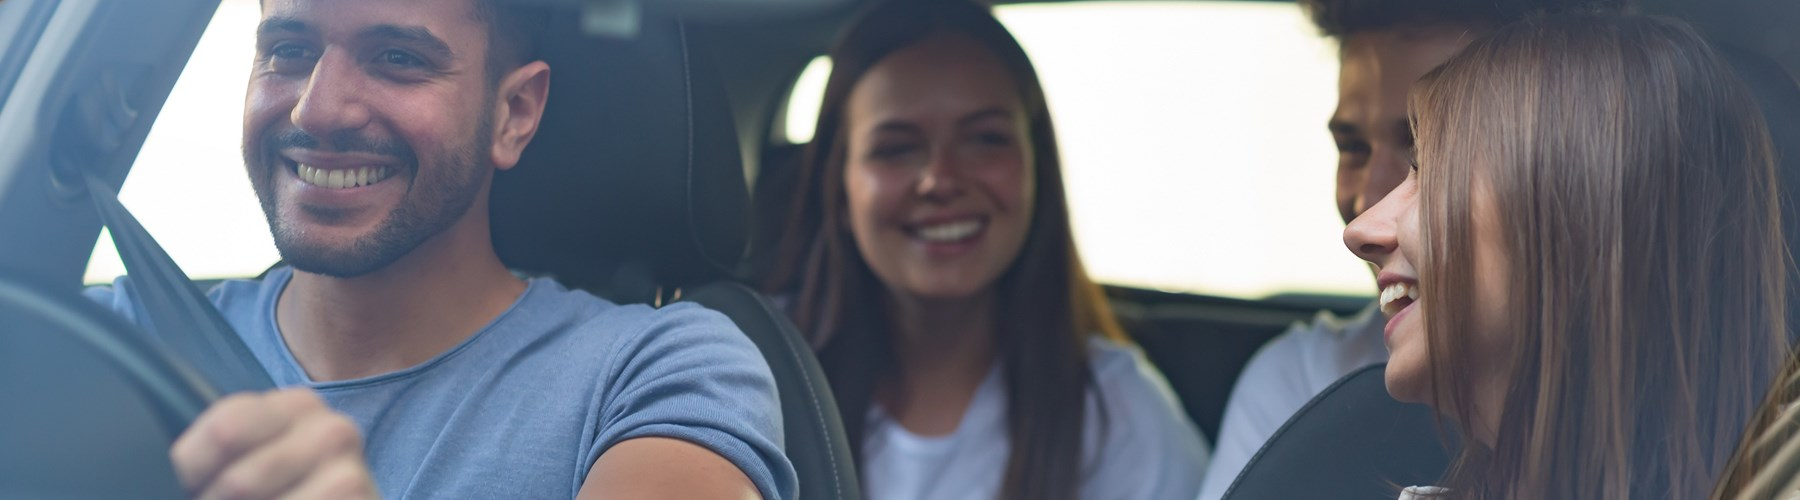 Car filled with friends laughing